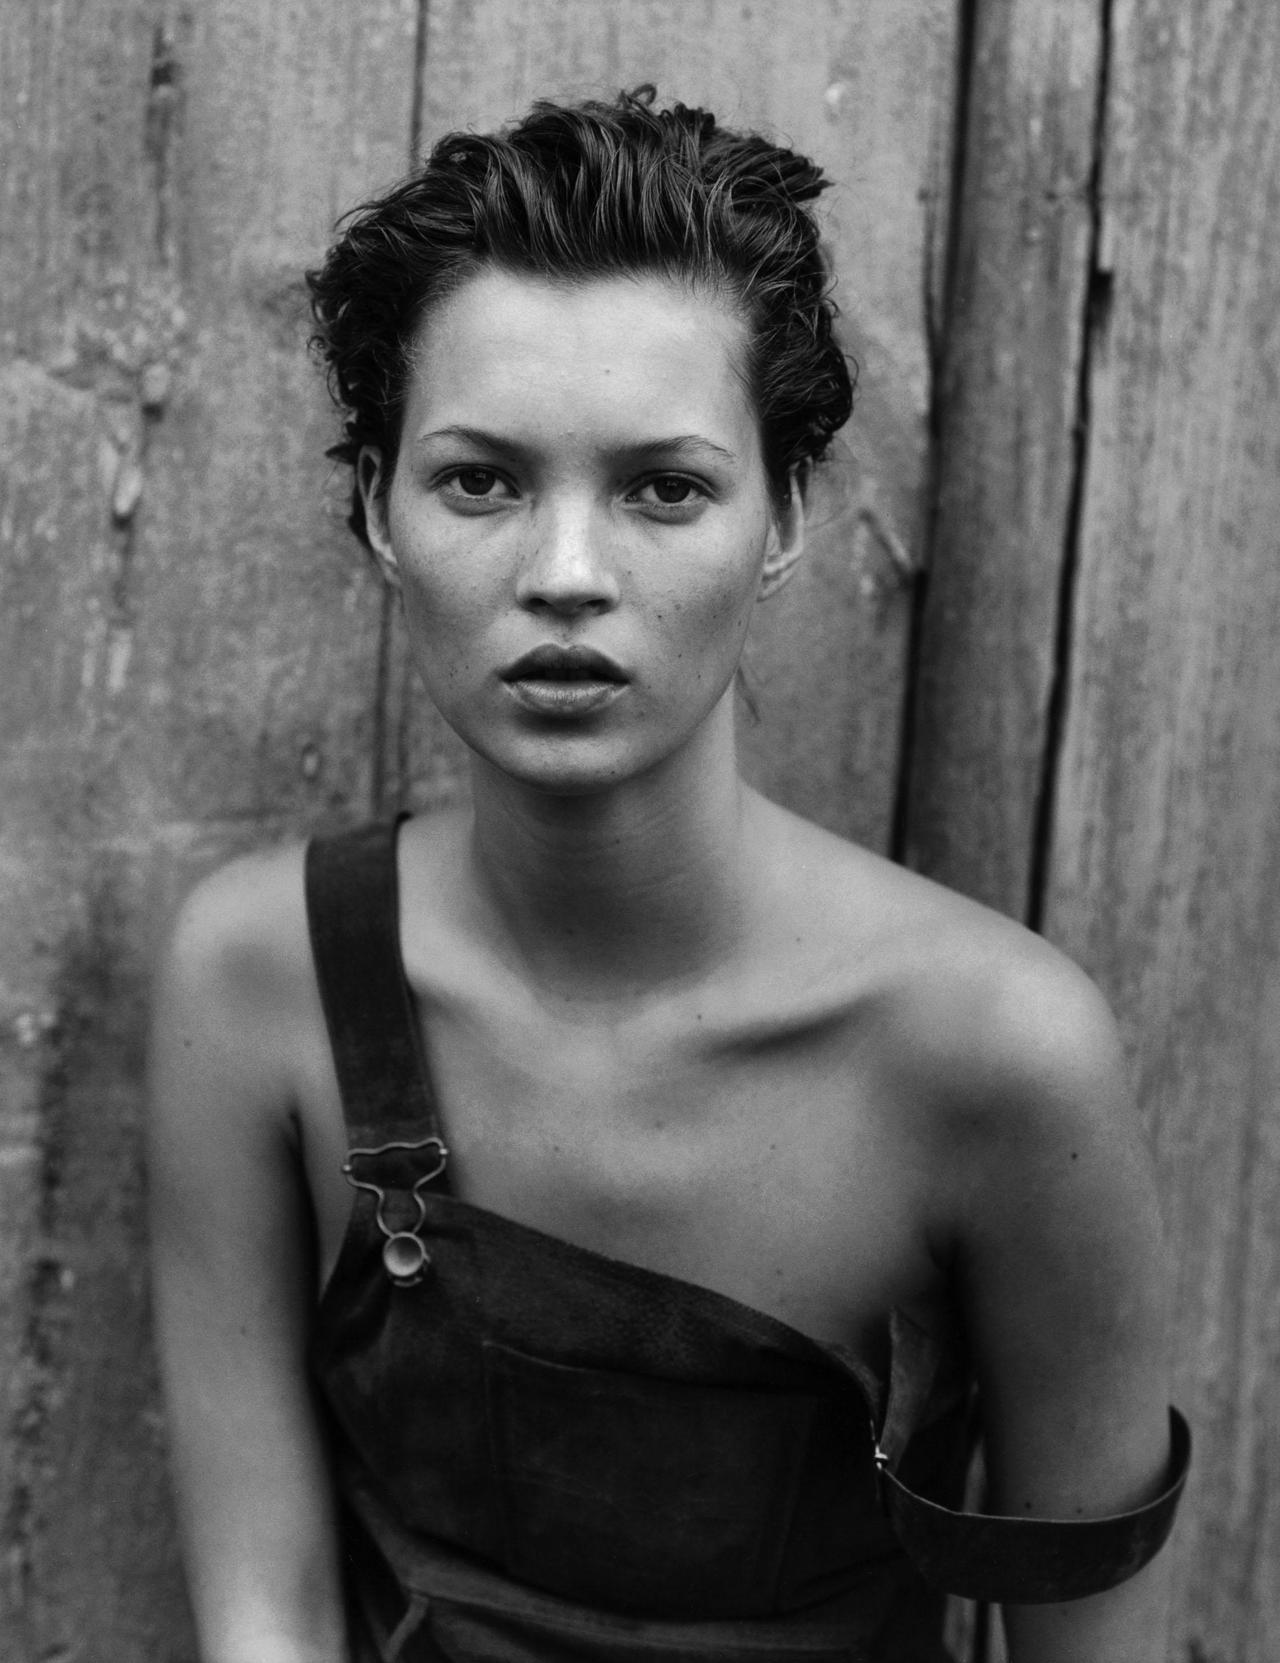 Kate Moss shot by Peter Lindbergh.